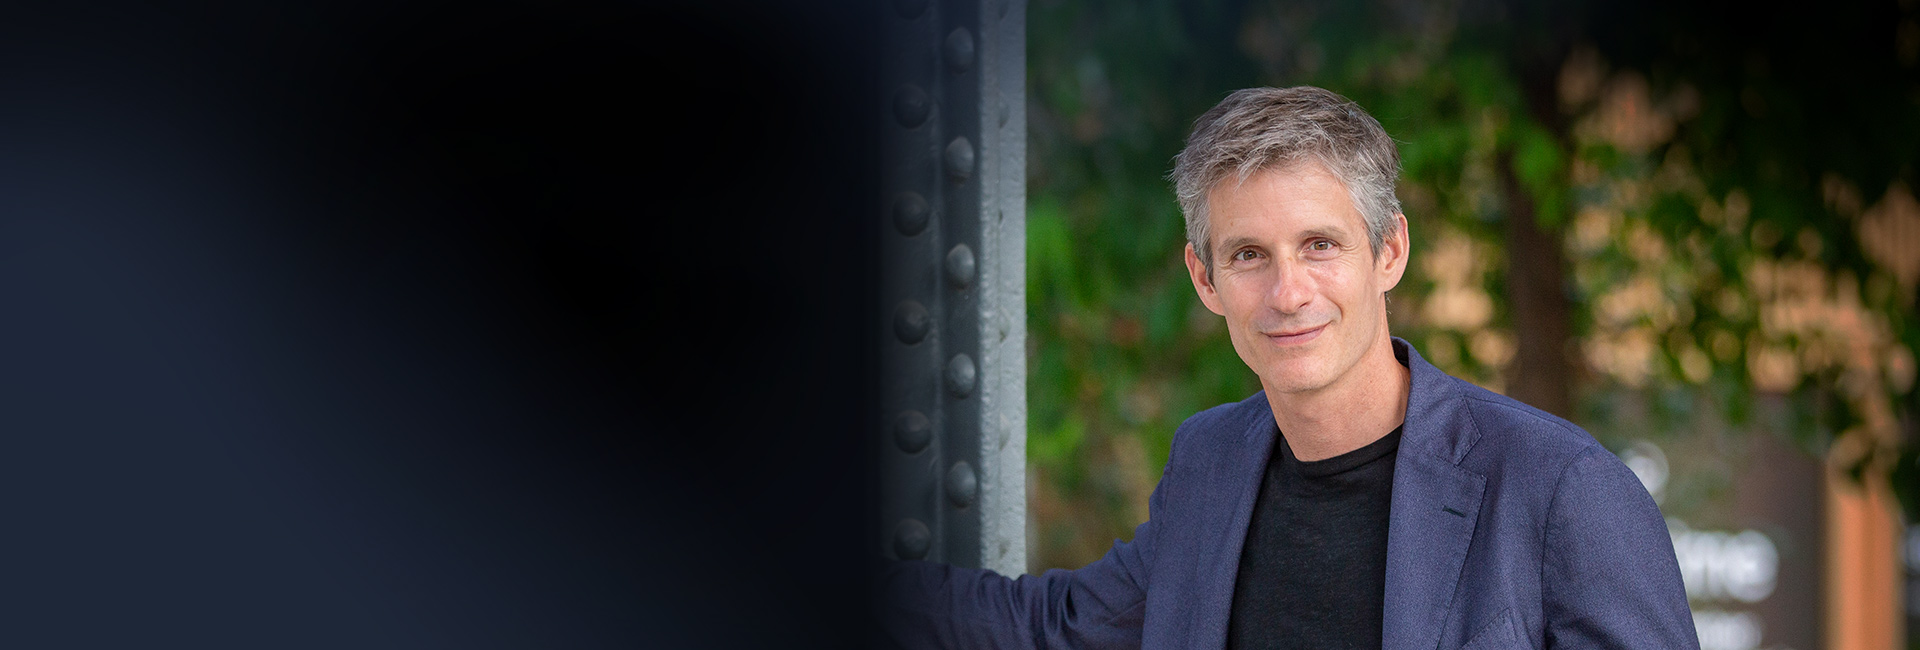 Guillaume Boutin: CEO du Groupe Proximus